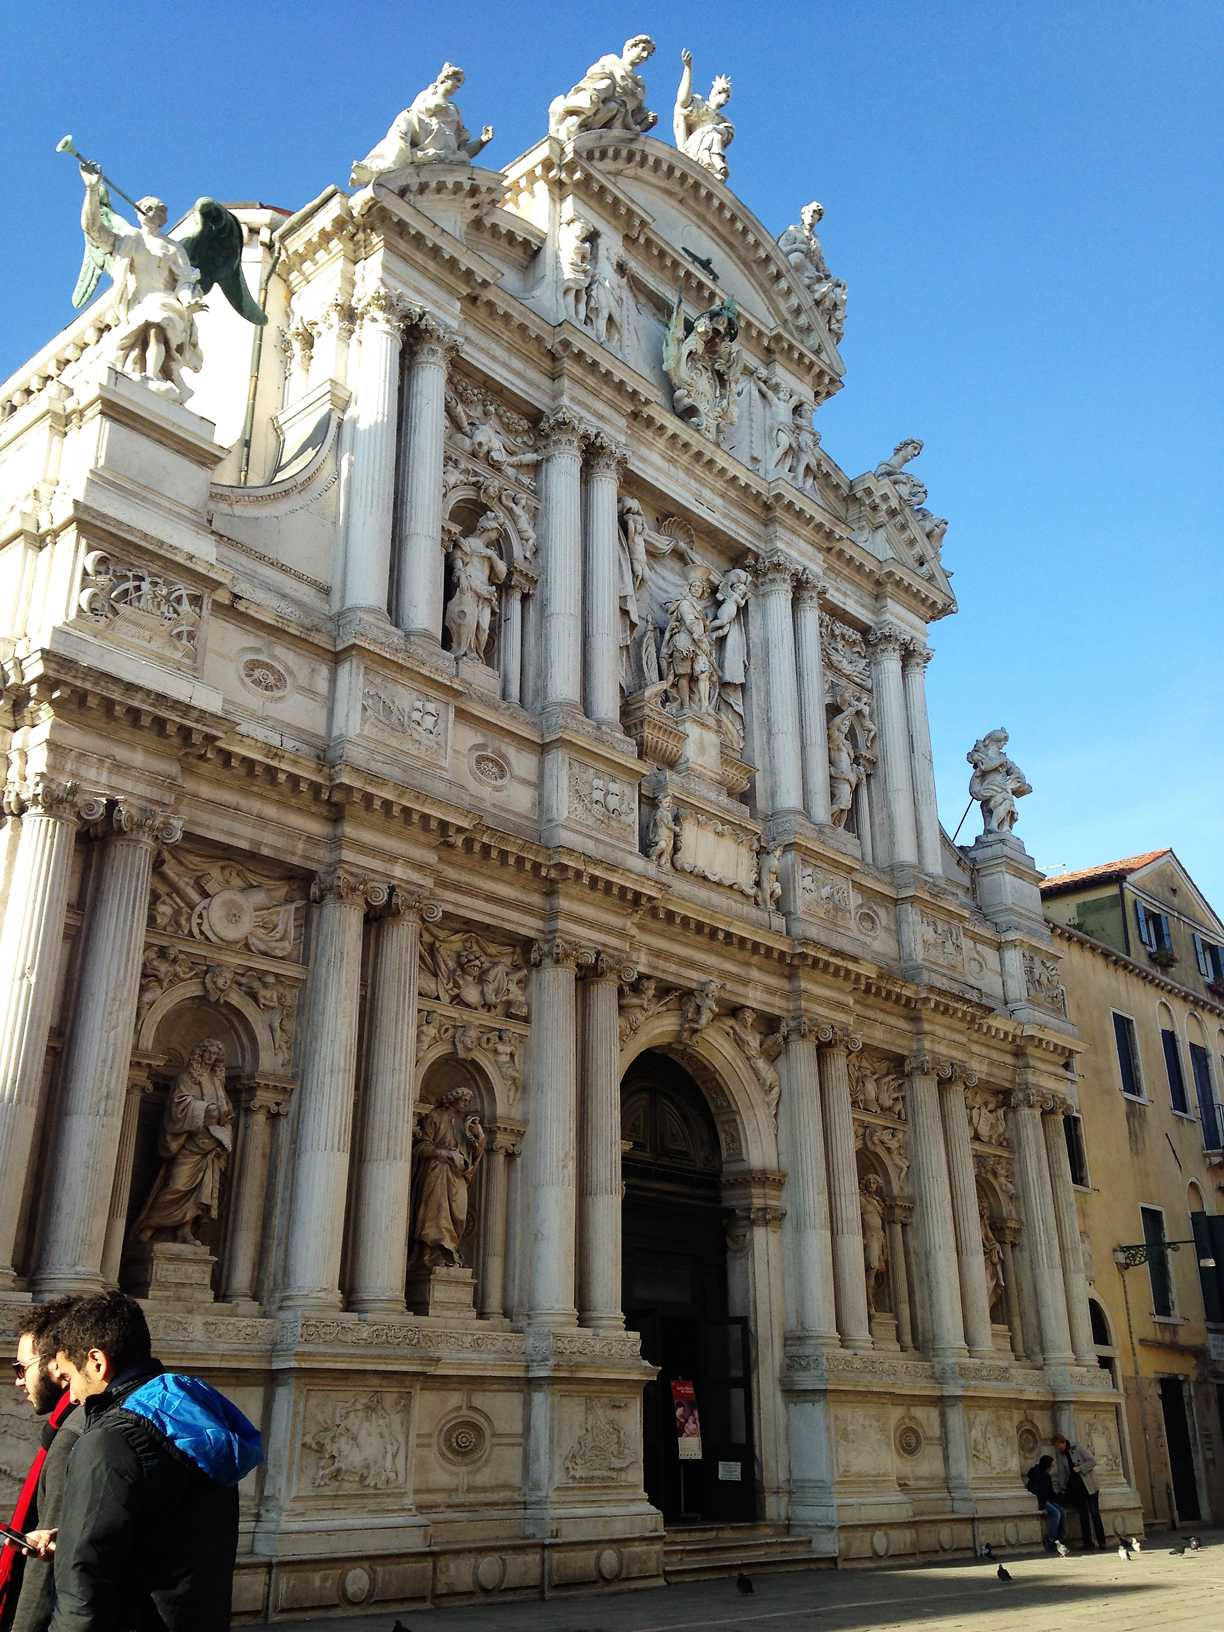 A church in Venice, Italy with a highly decorated stone facade.